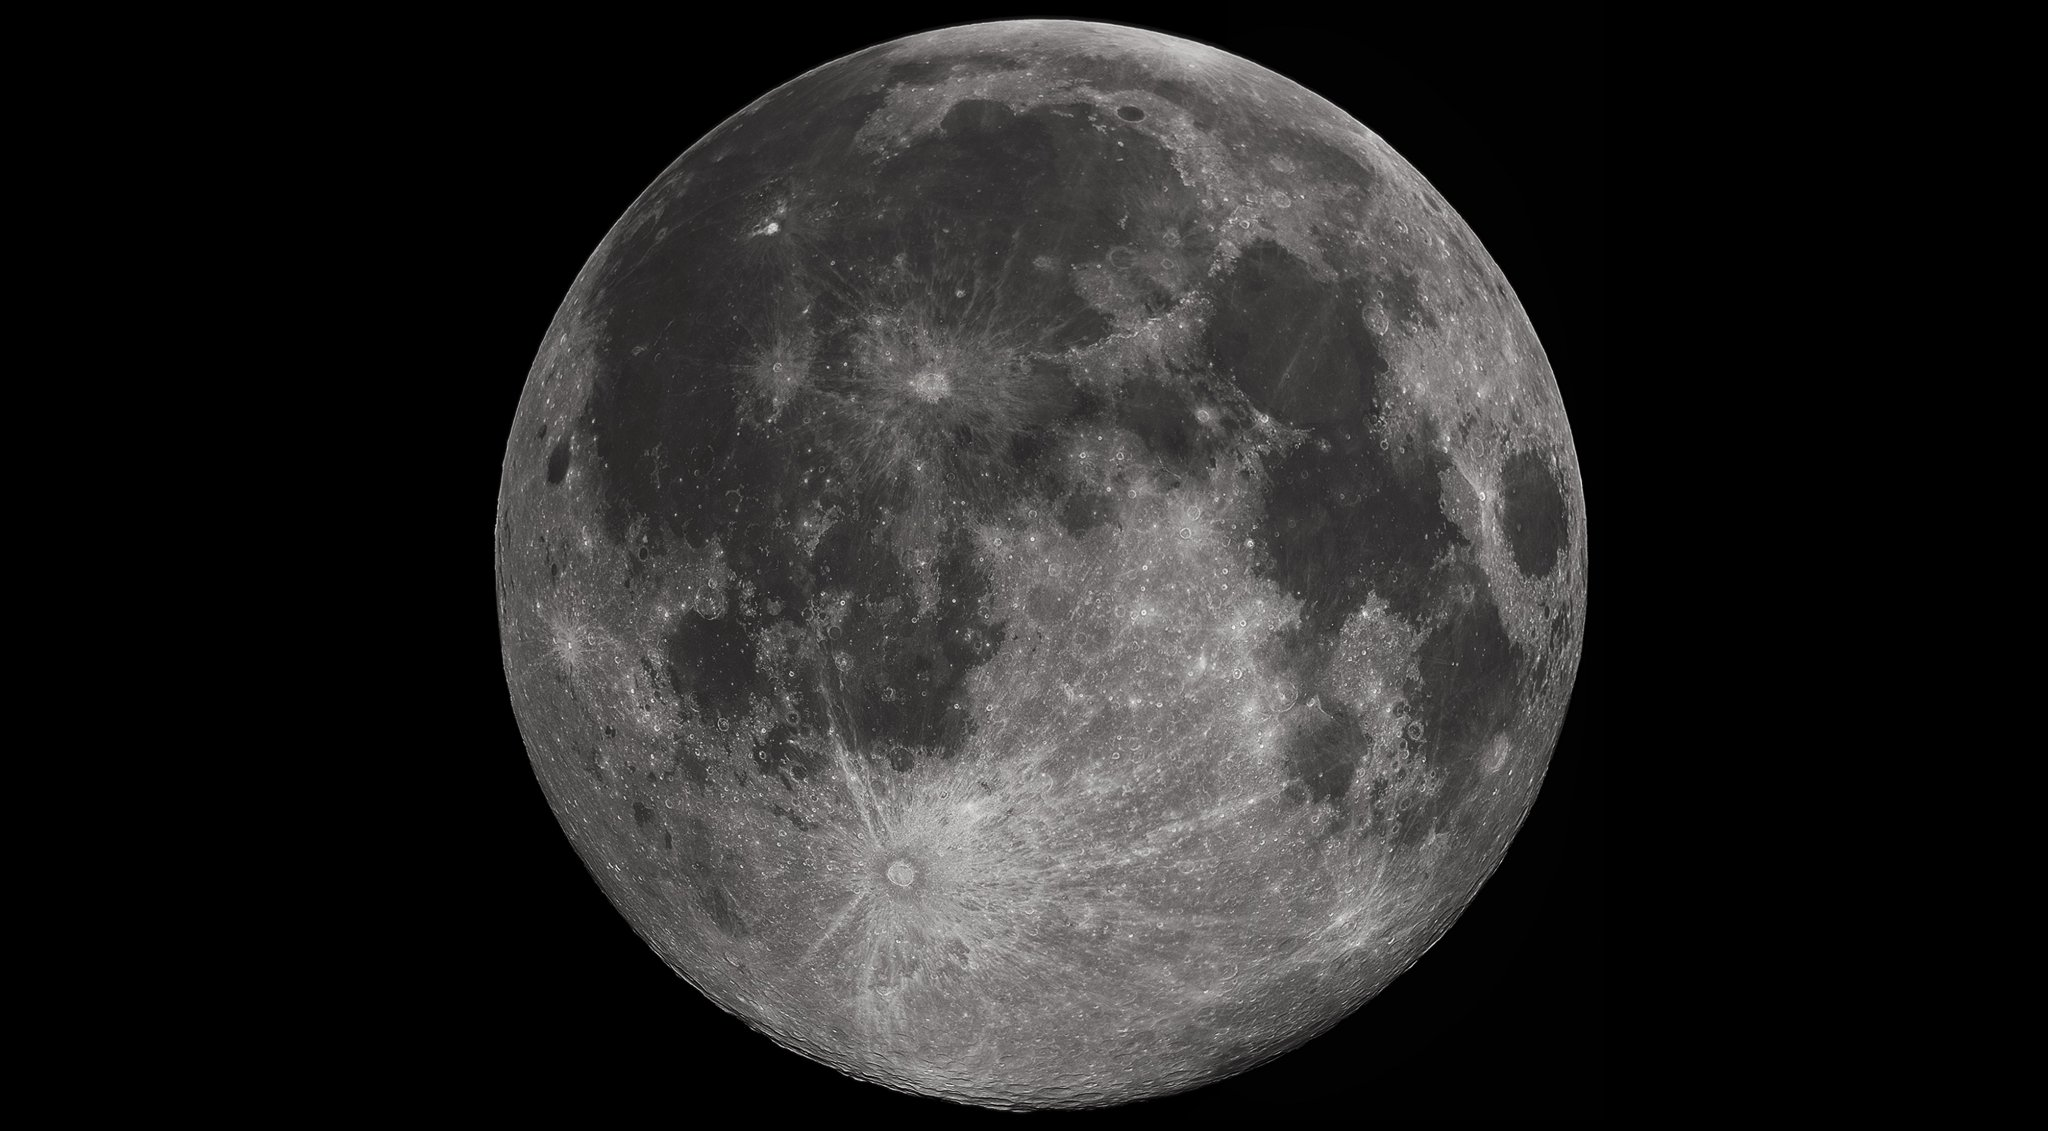 The Moon Has More Radiation Than We Thought, a New Problem for Astronauts